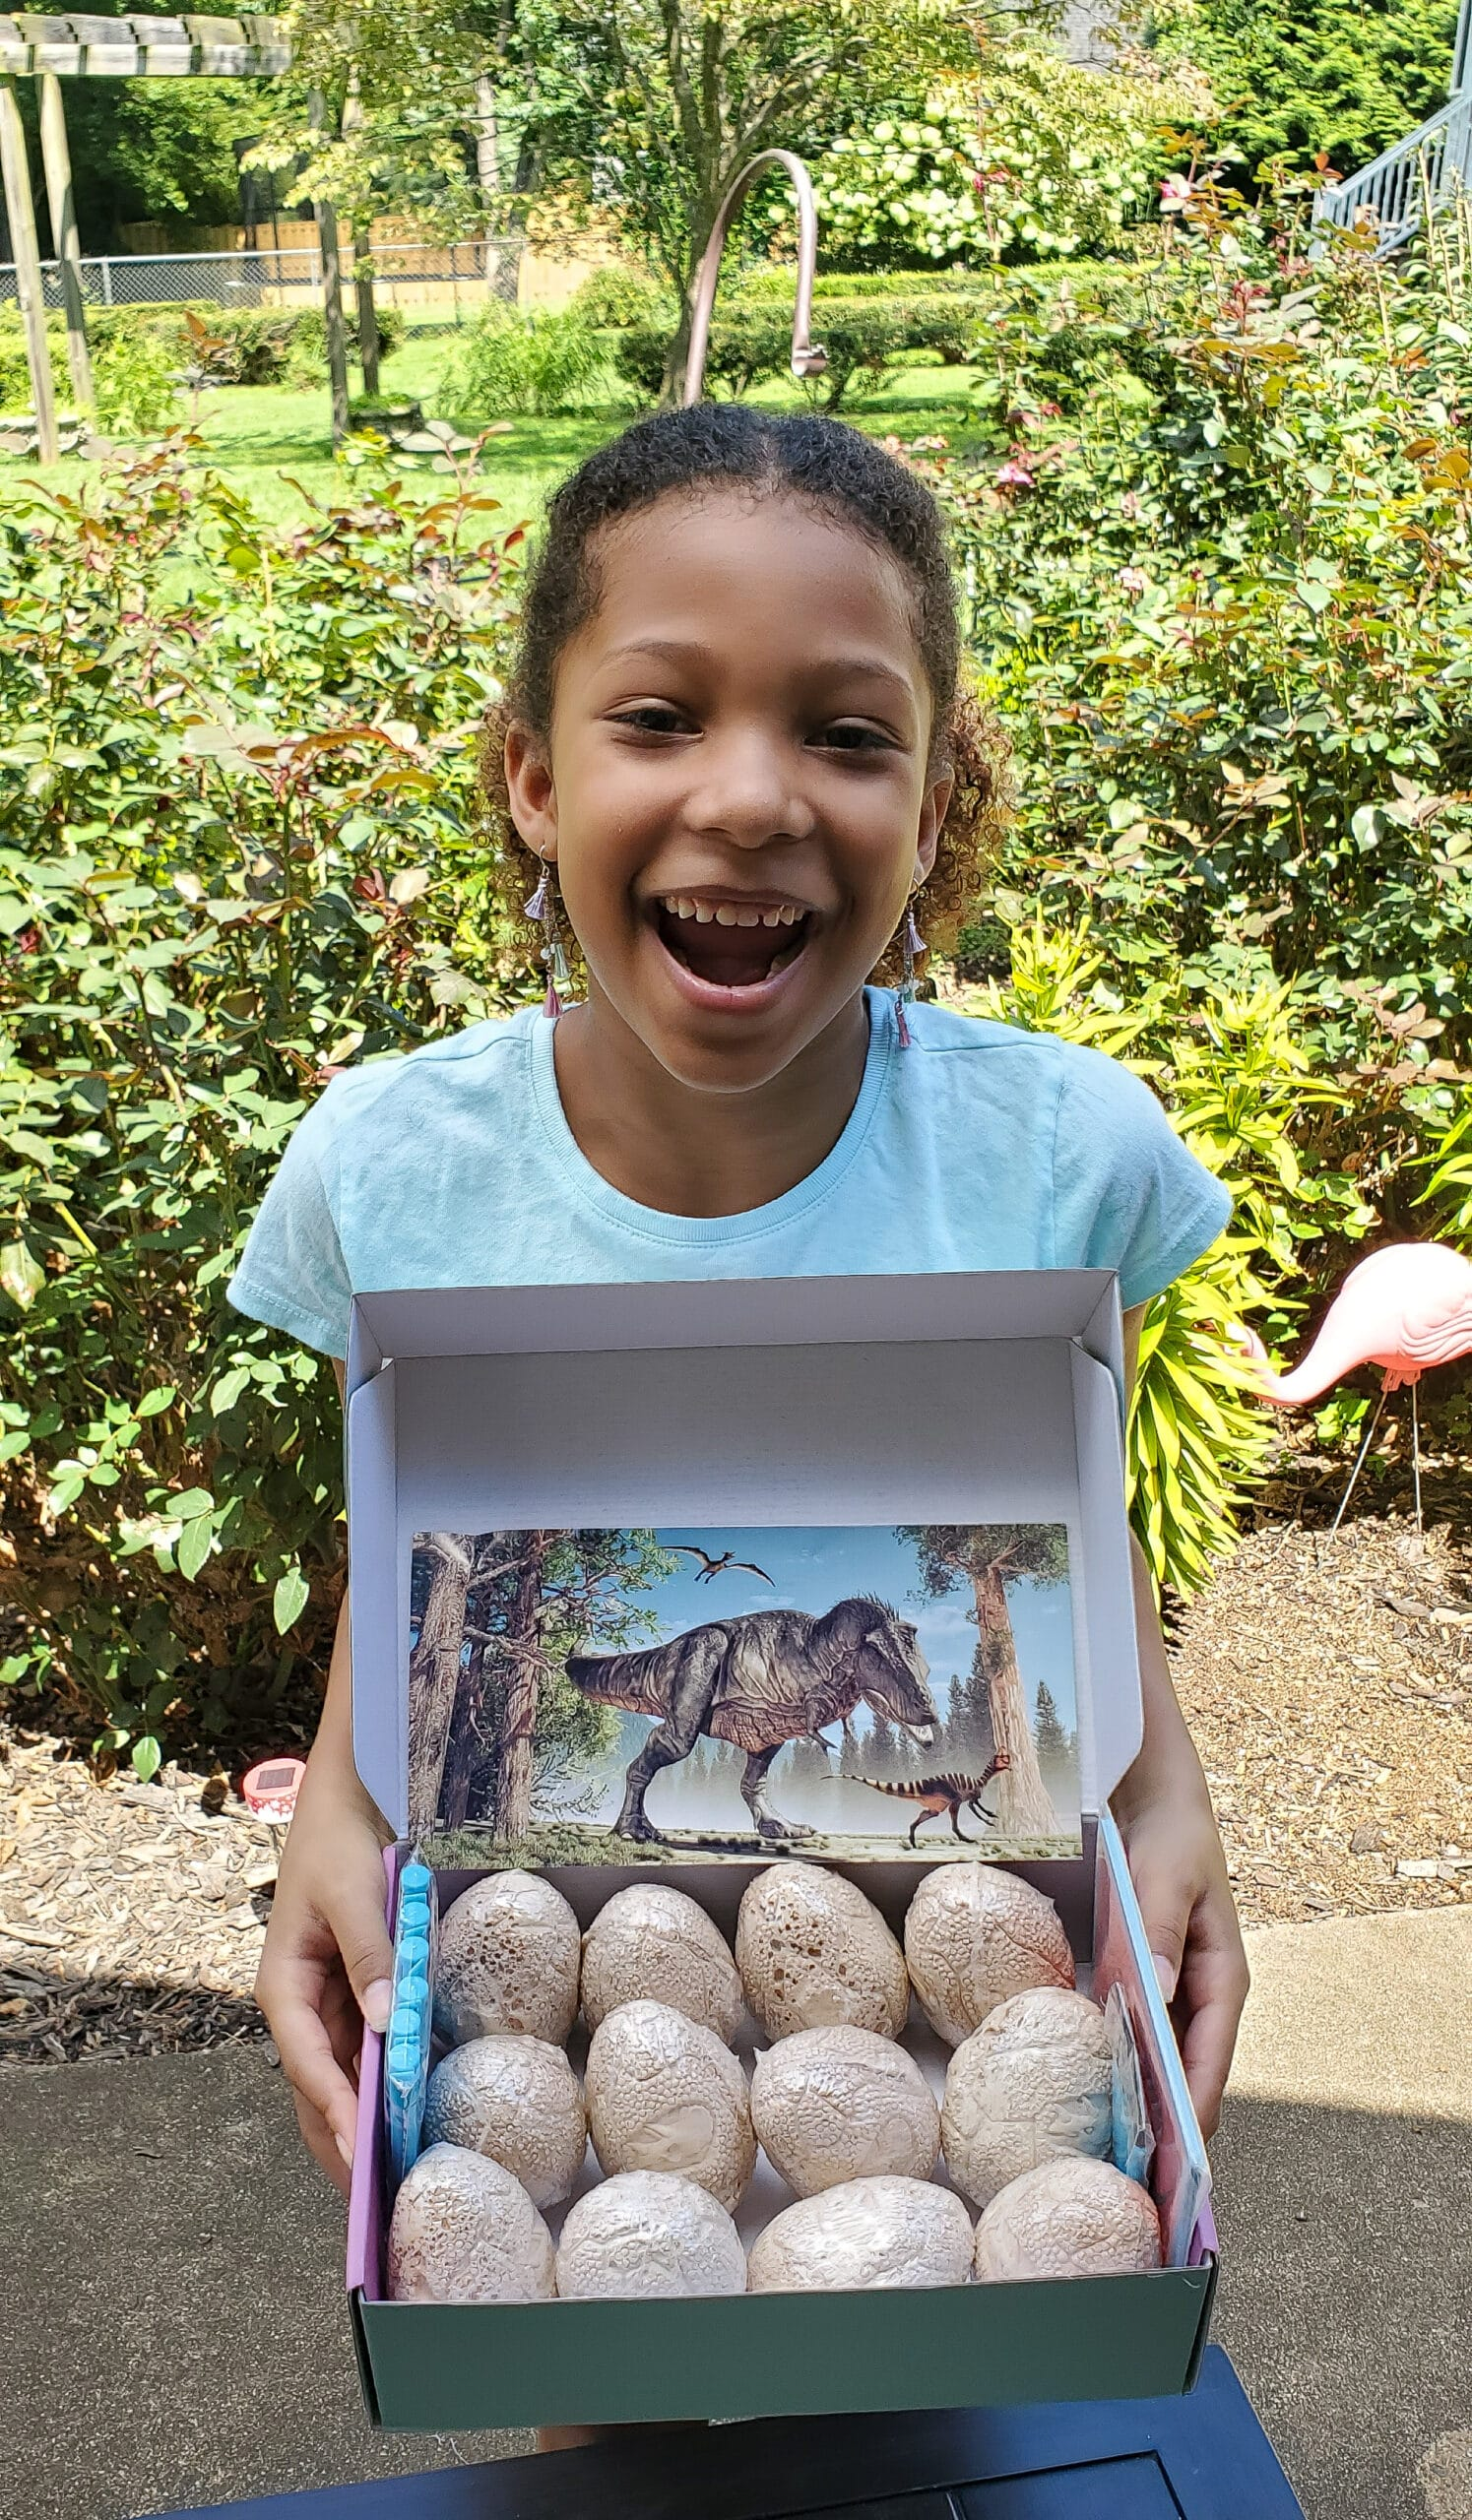 Dinosaur Eggs Esuun. Get ready forroars and rescues withthePAW Patrolinthe brand-newDVDPAW Patrol: Dino Rescue. We received a special package in honor of this awesome DVD release. Inside we found some awesome surprises that we can't wait to share with you.